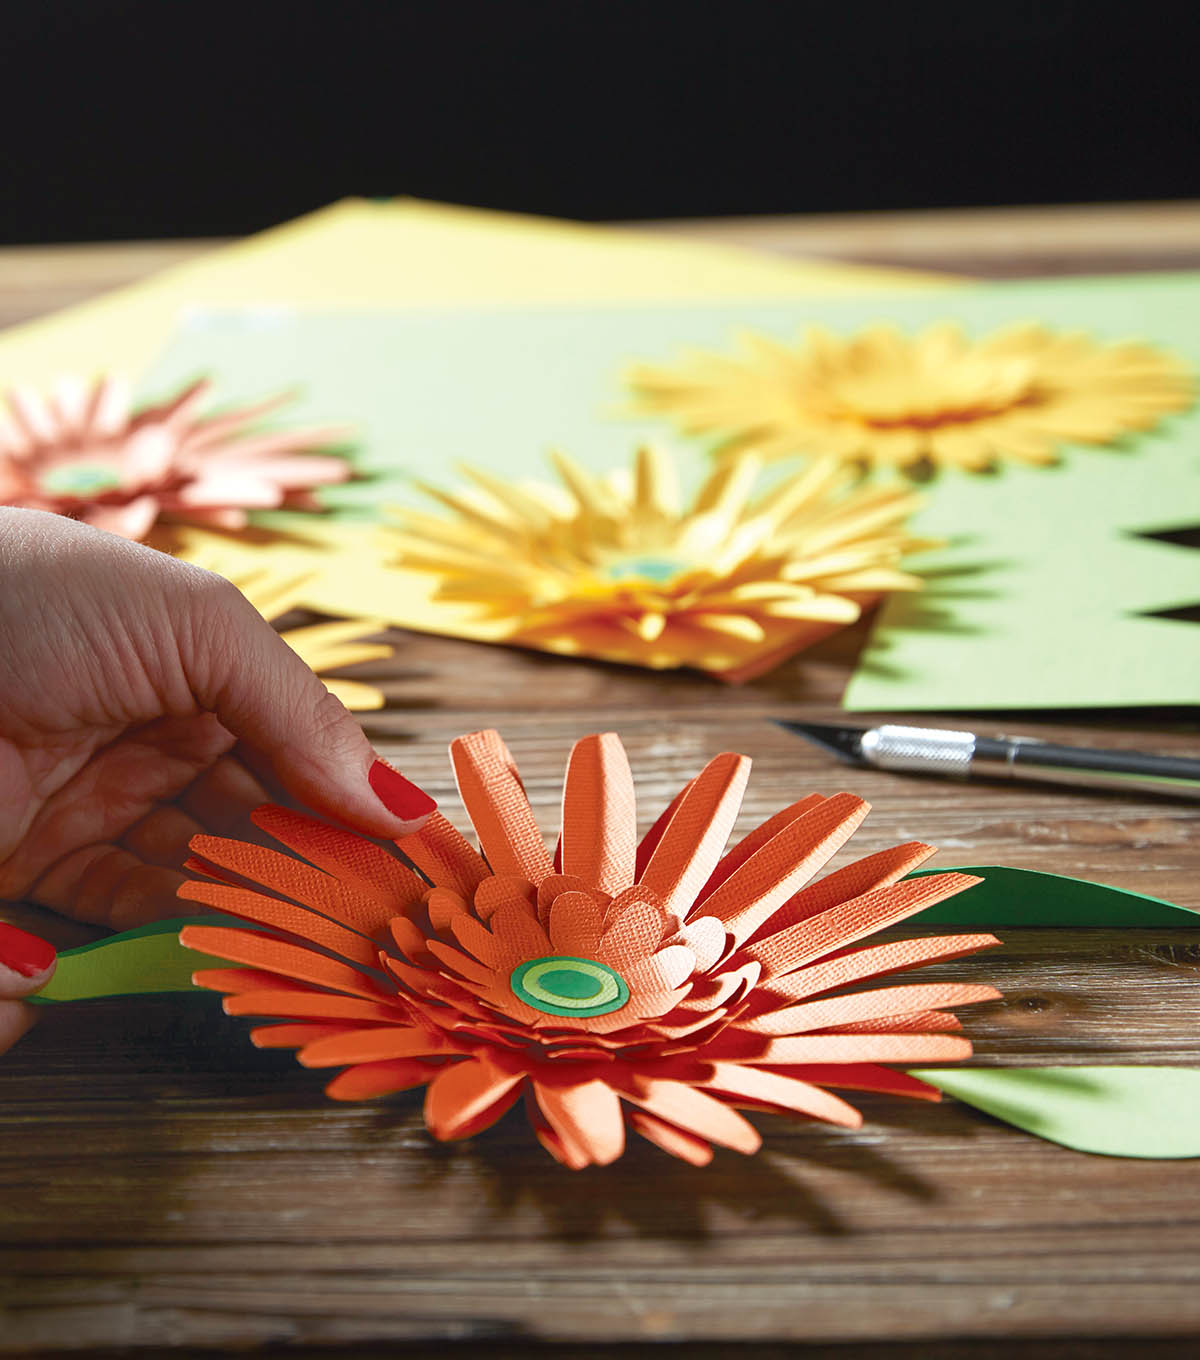 How To Make Gerbera Daisy Paper Flowers Joann